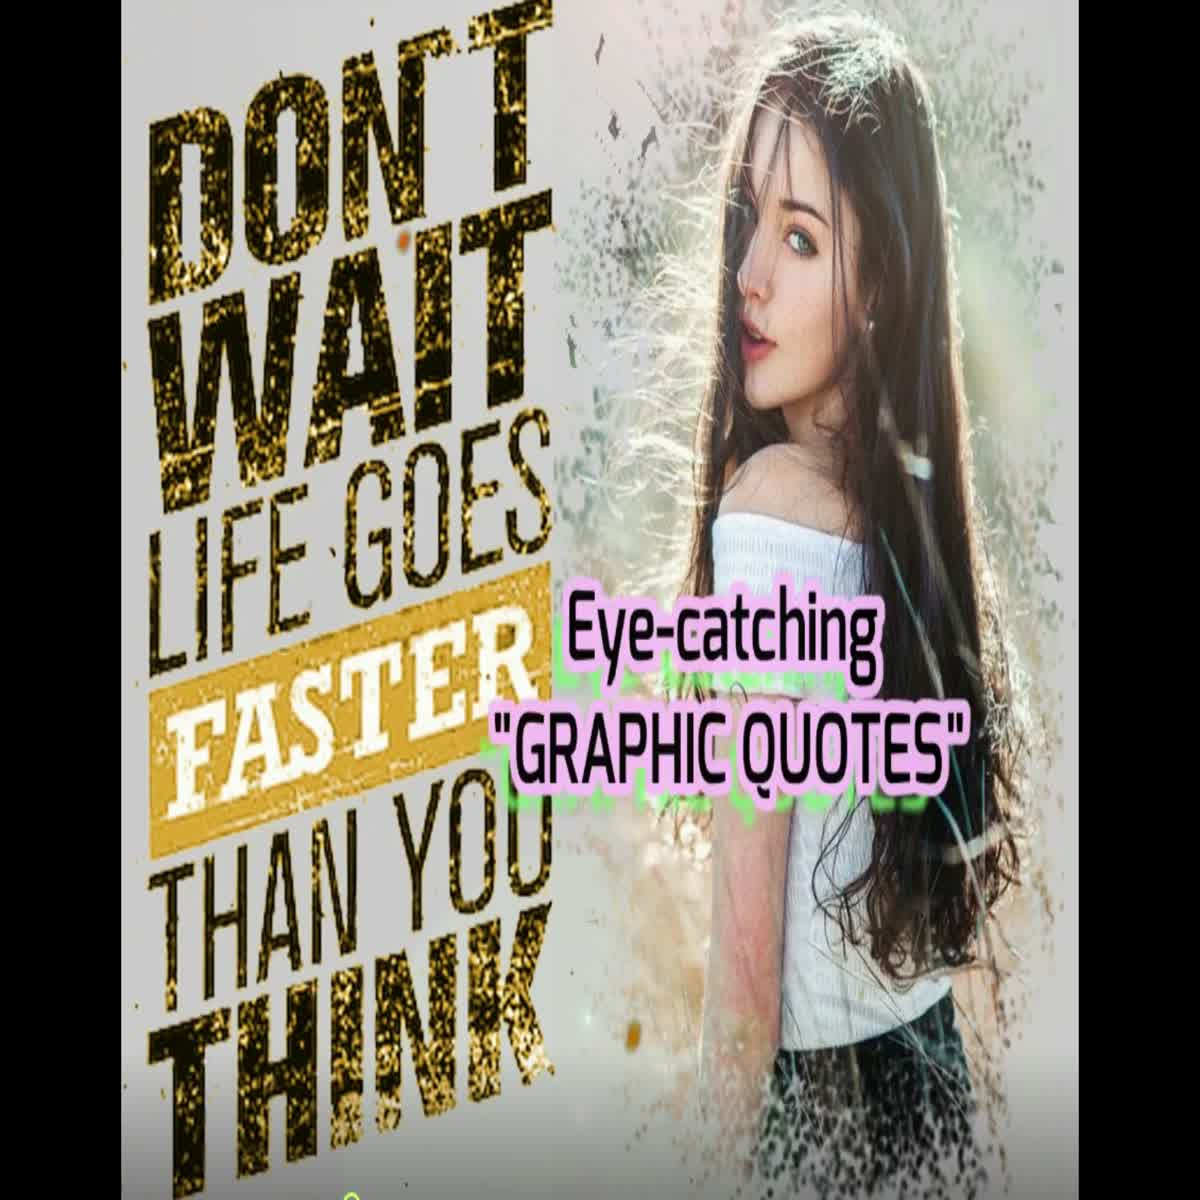 let me turn your photo into something beautiful, eye-catching GRAPHIC QUOTES